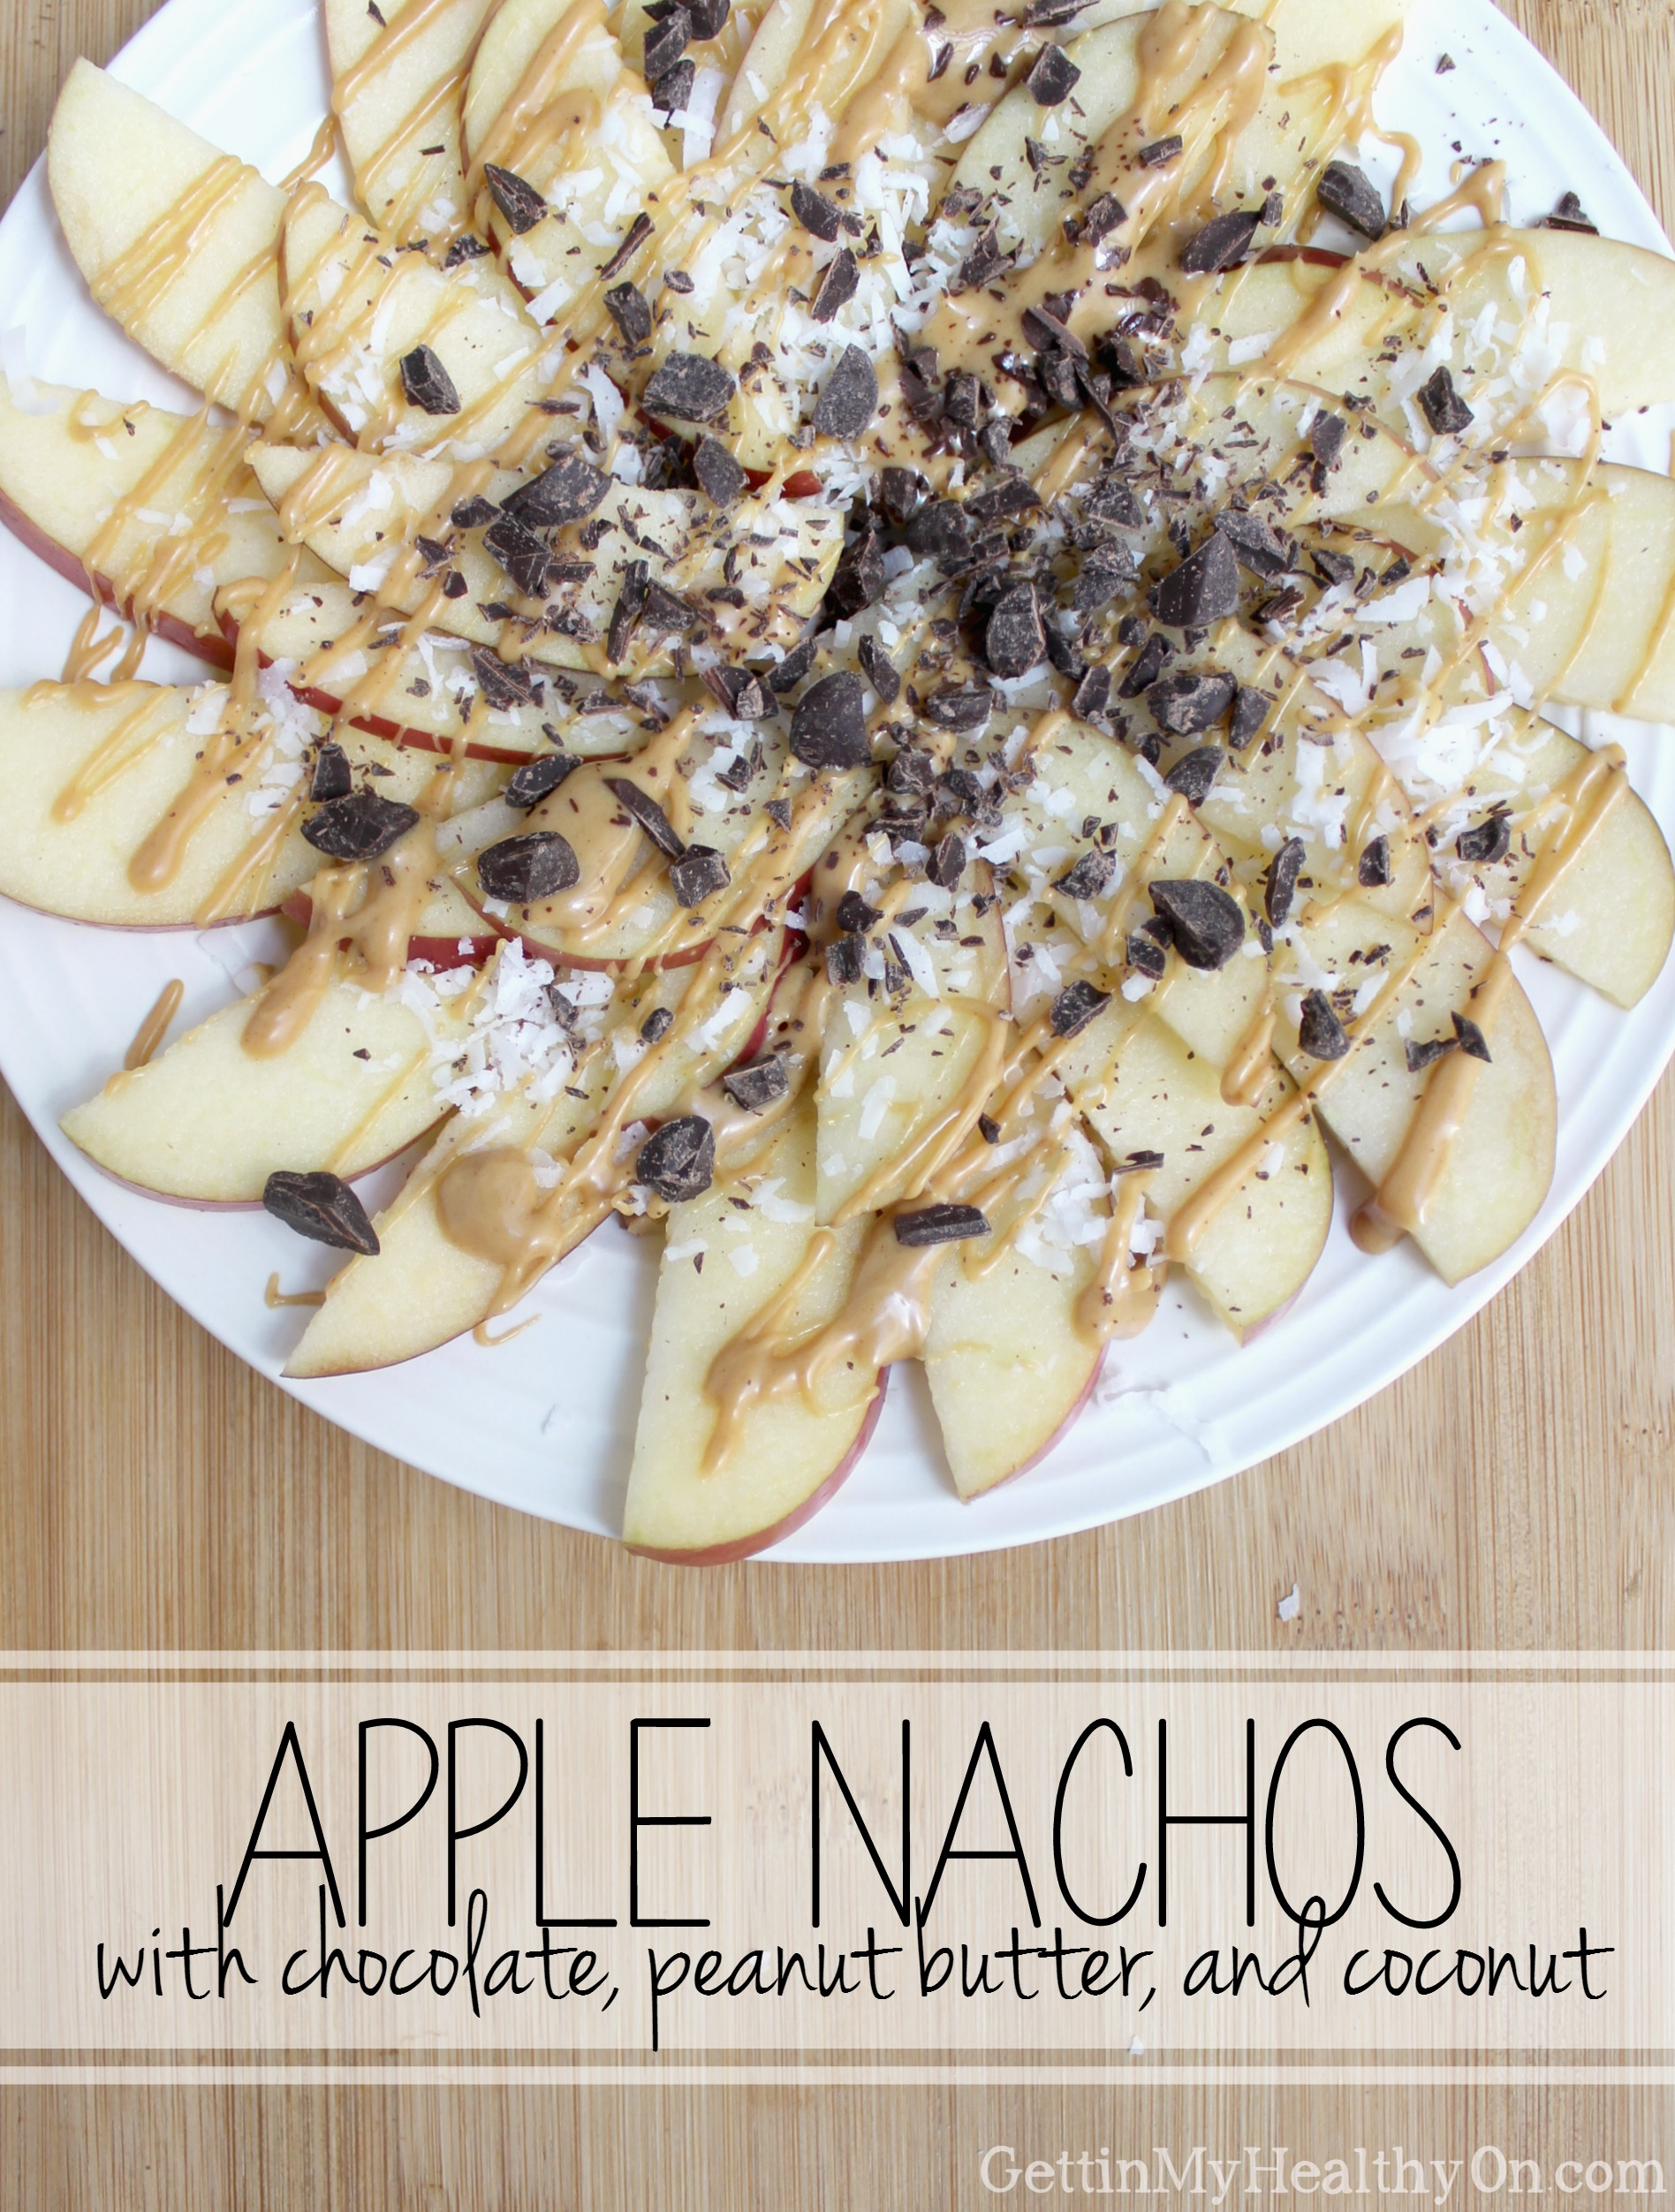 Apple Nachos with Chocolate, Peanut Butter, and Coconut